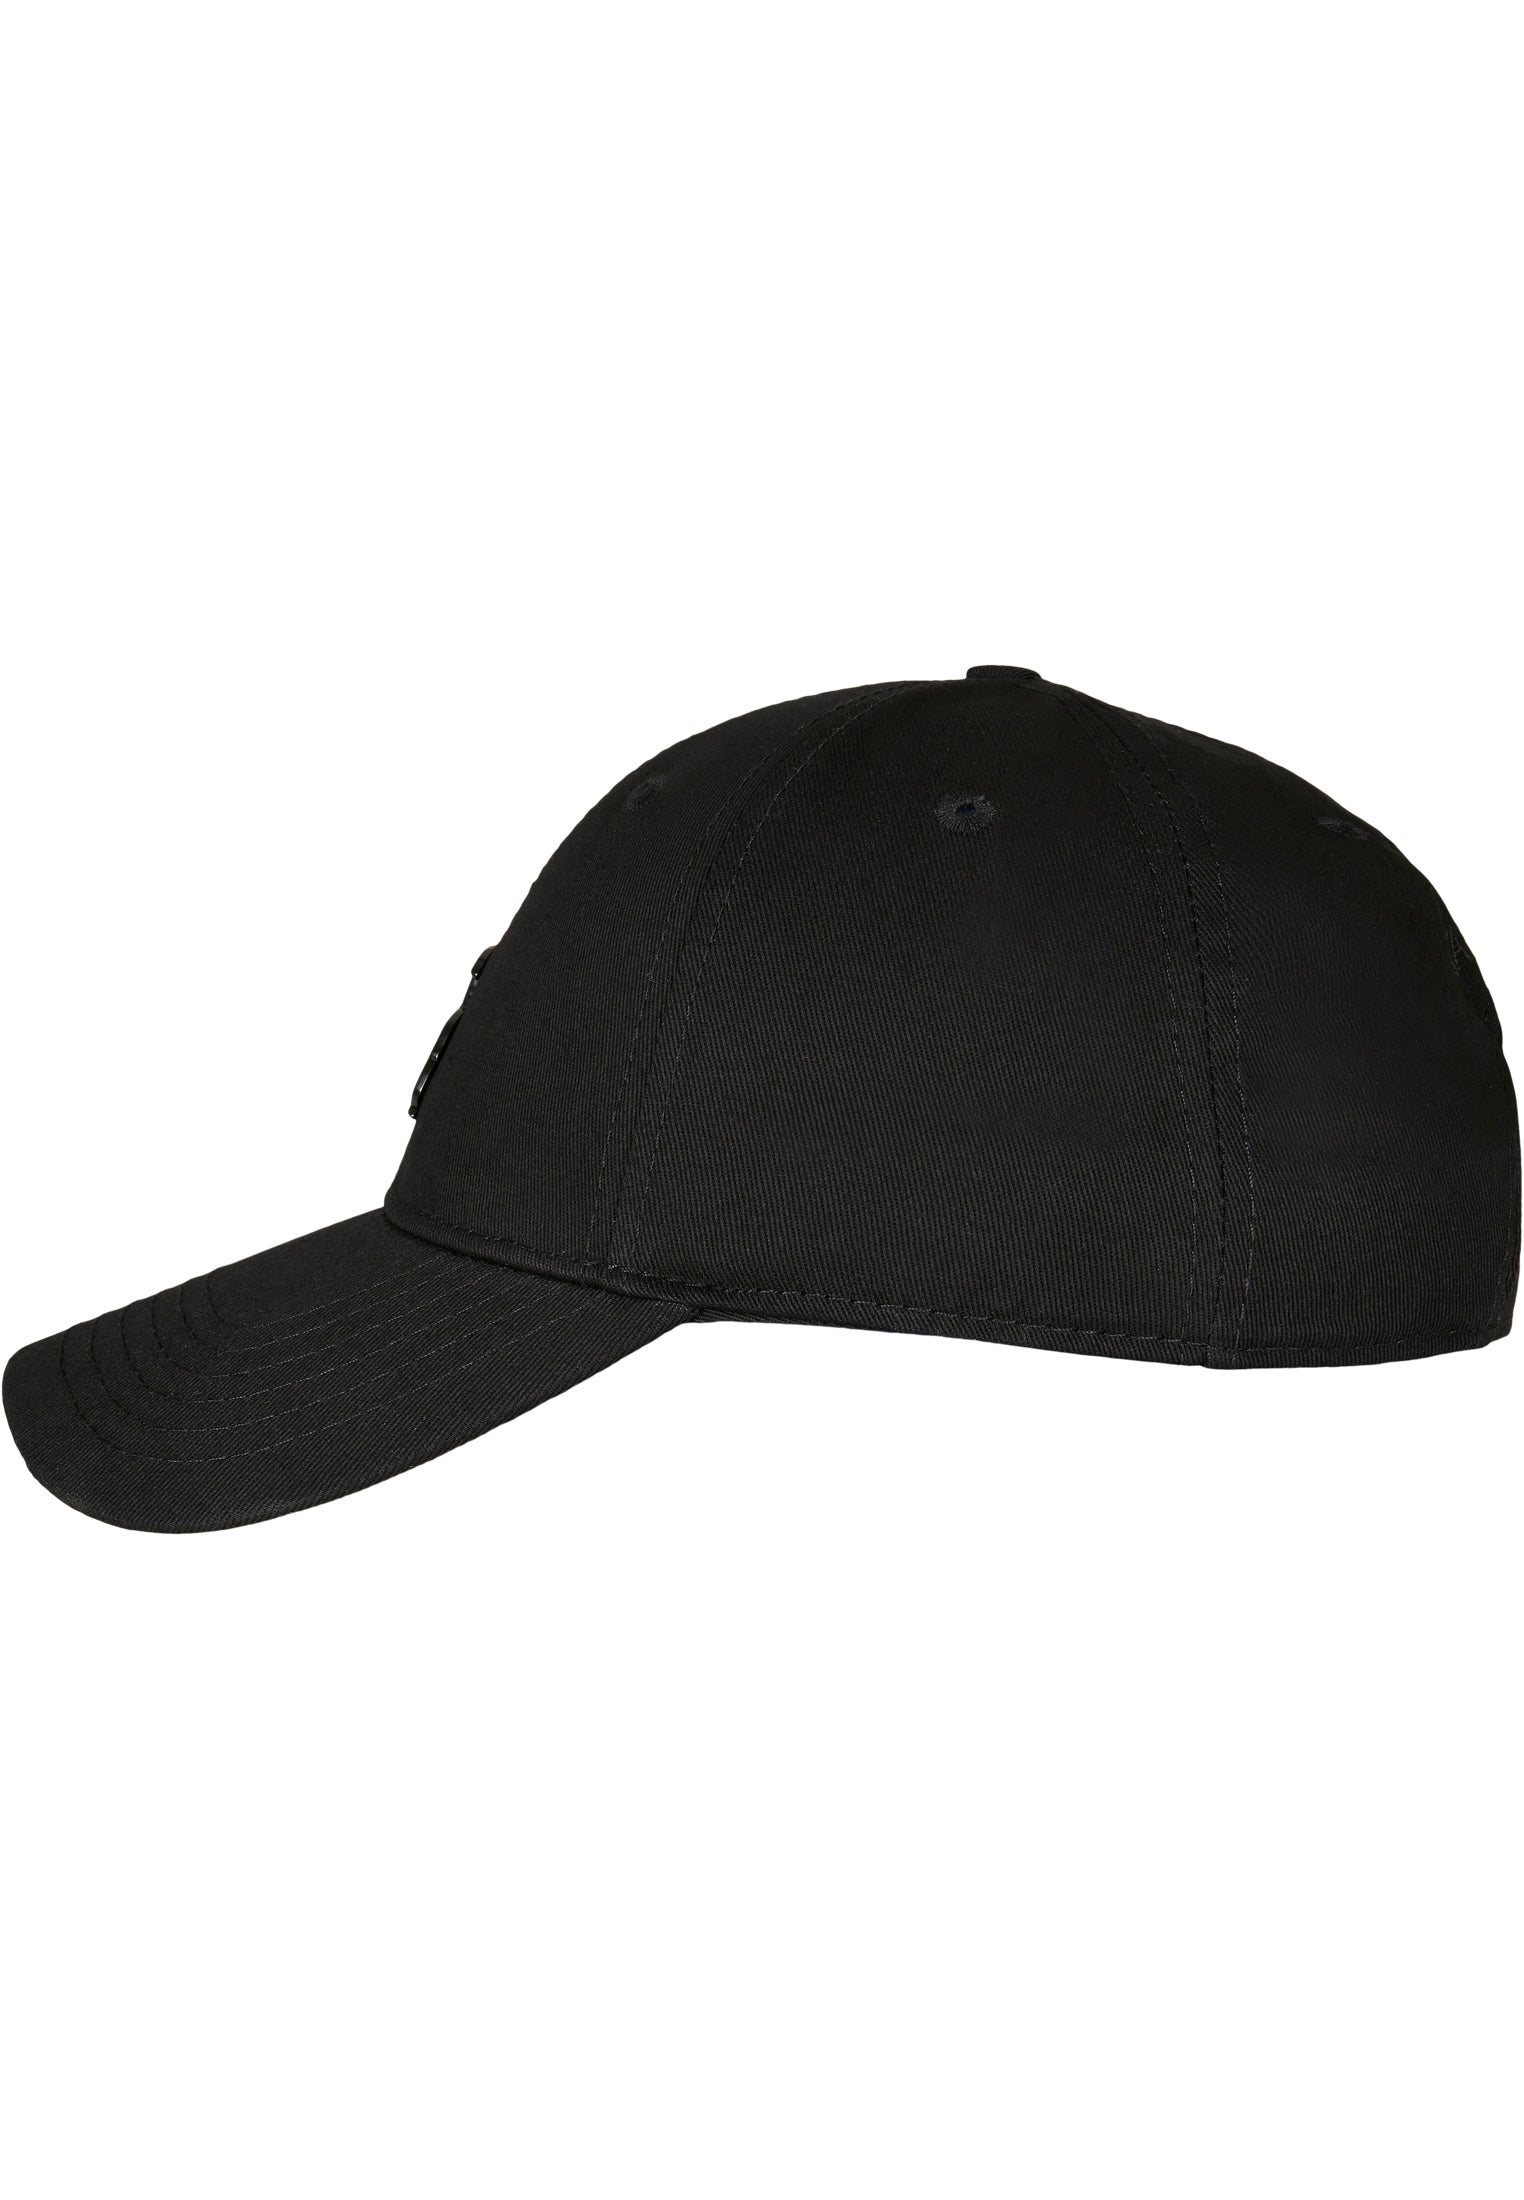 Pacenstein Curved Cap